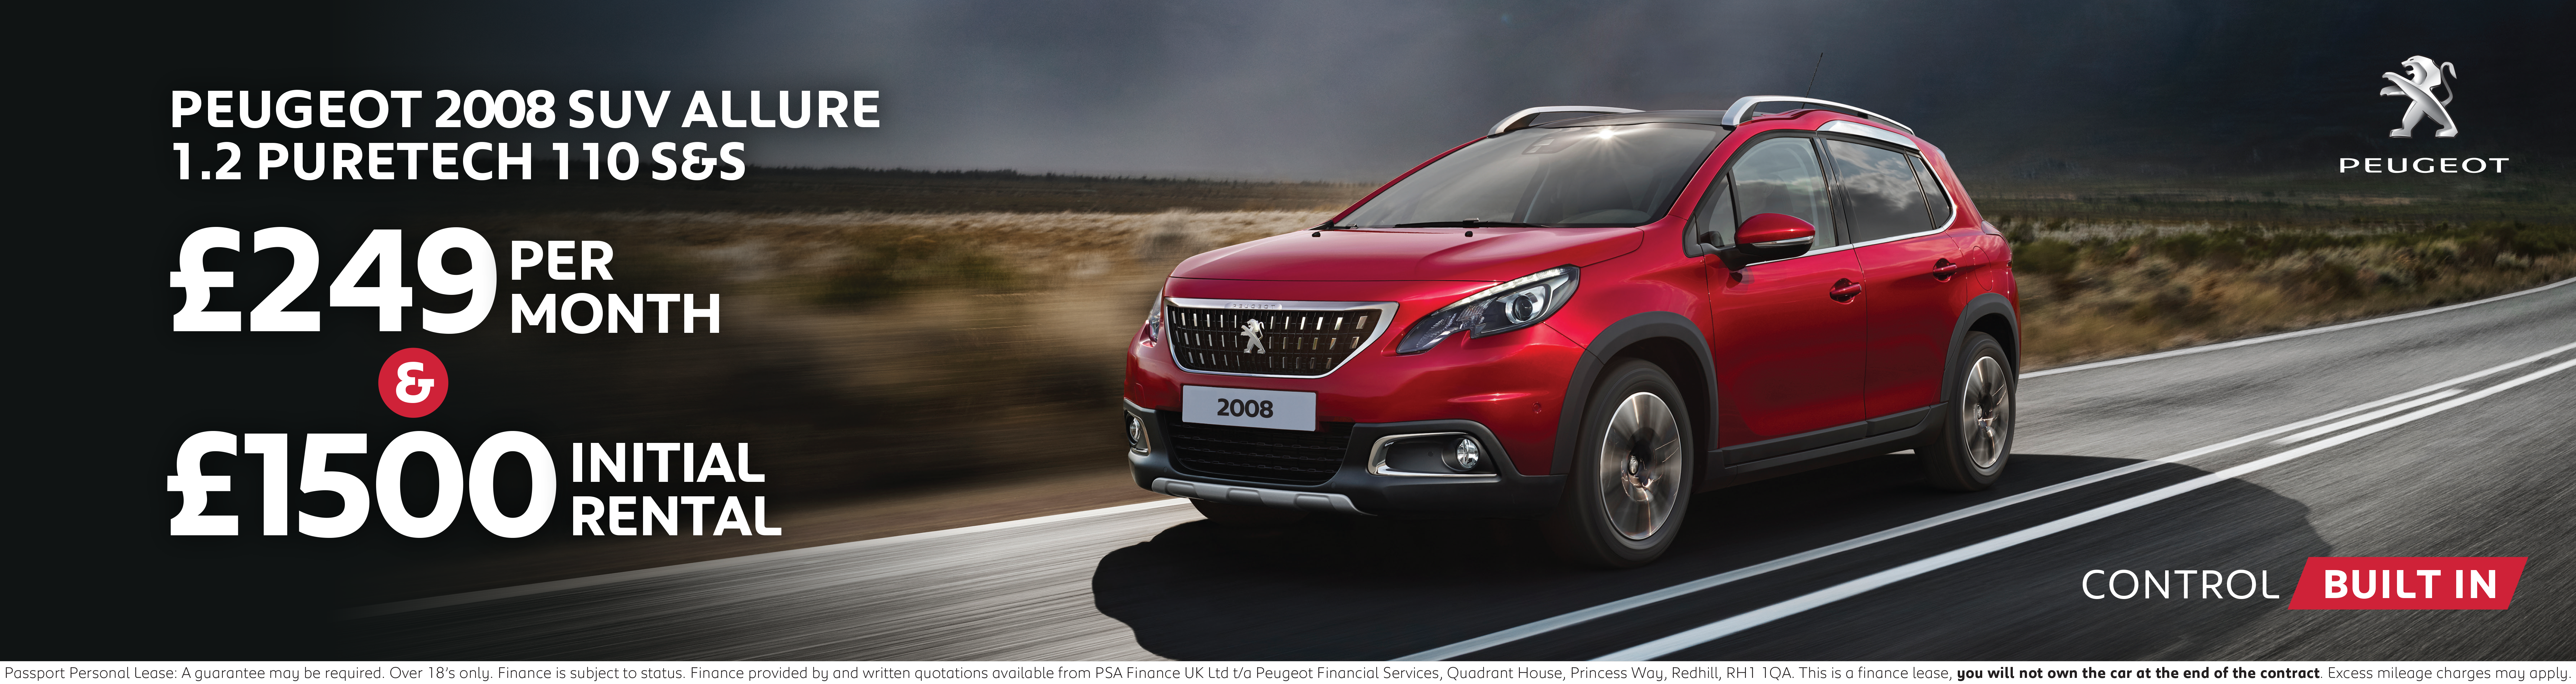 Peugeot 2008 SUV Finance Offer